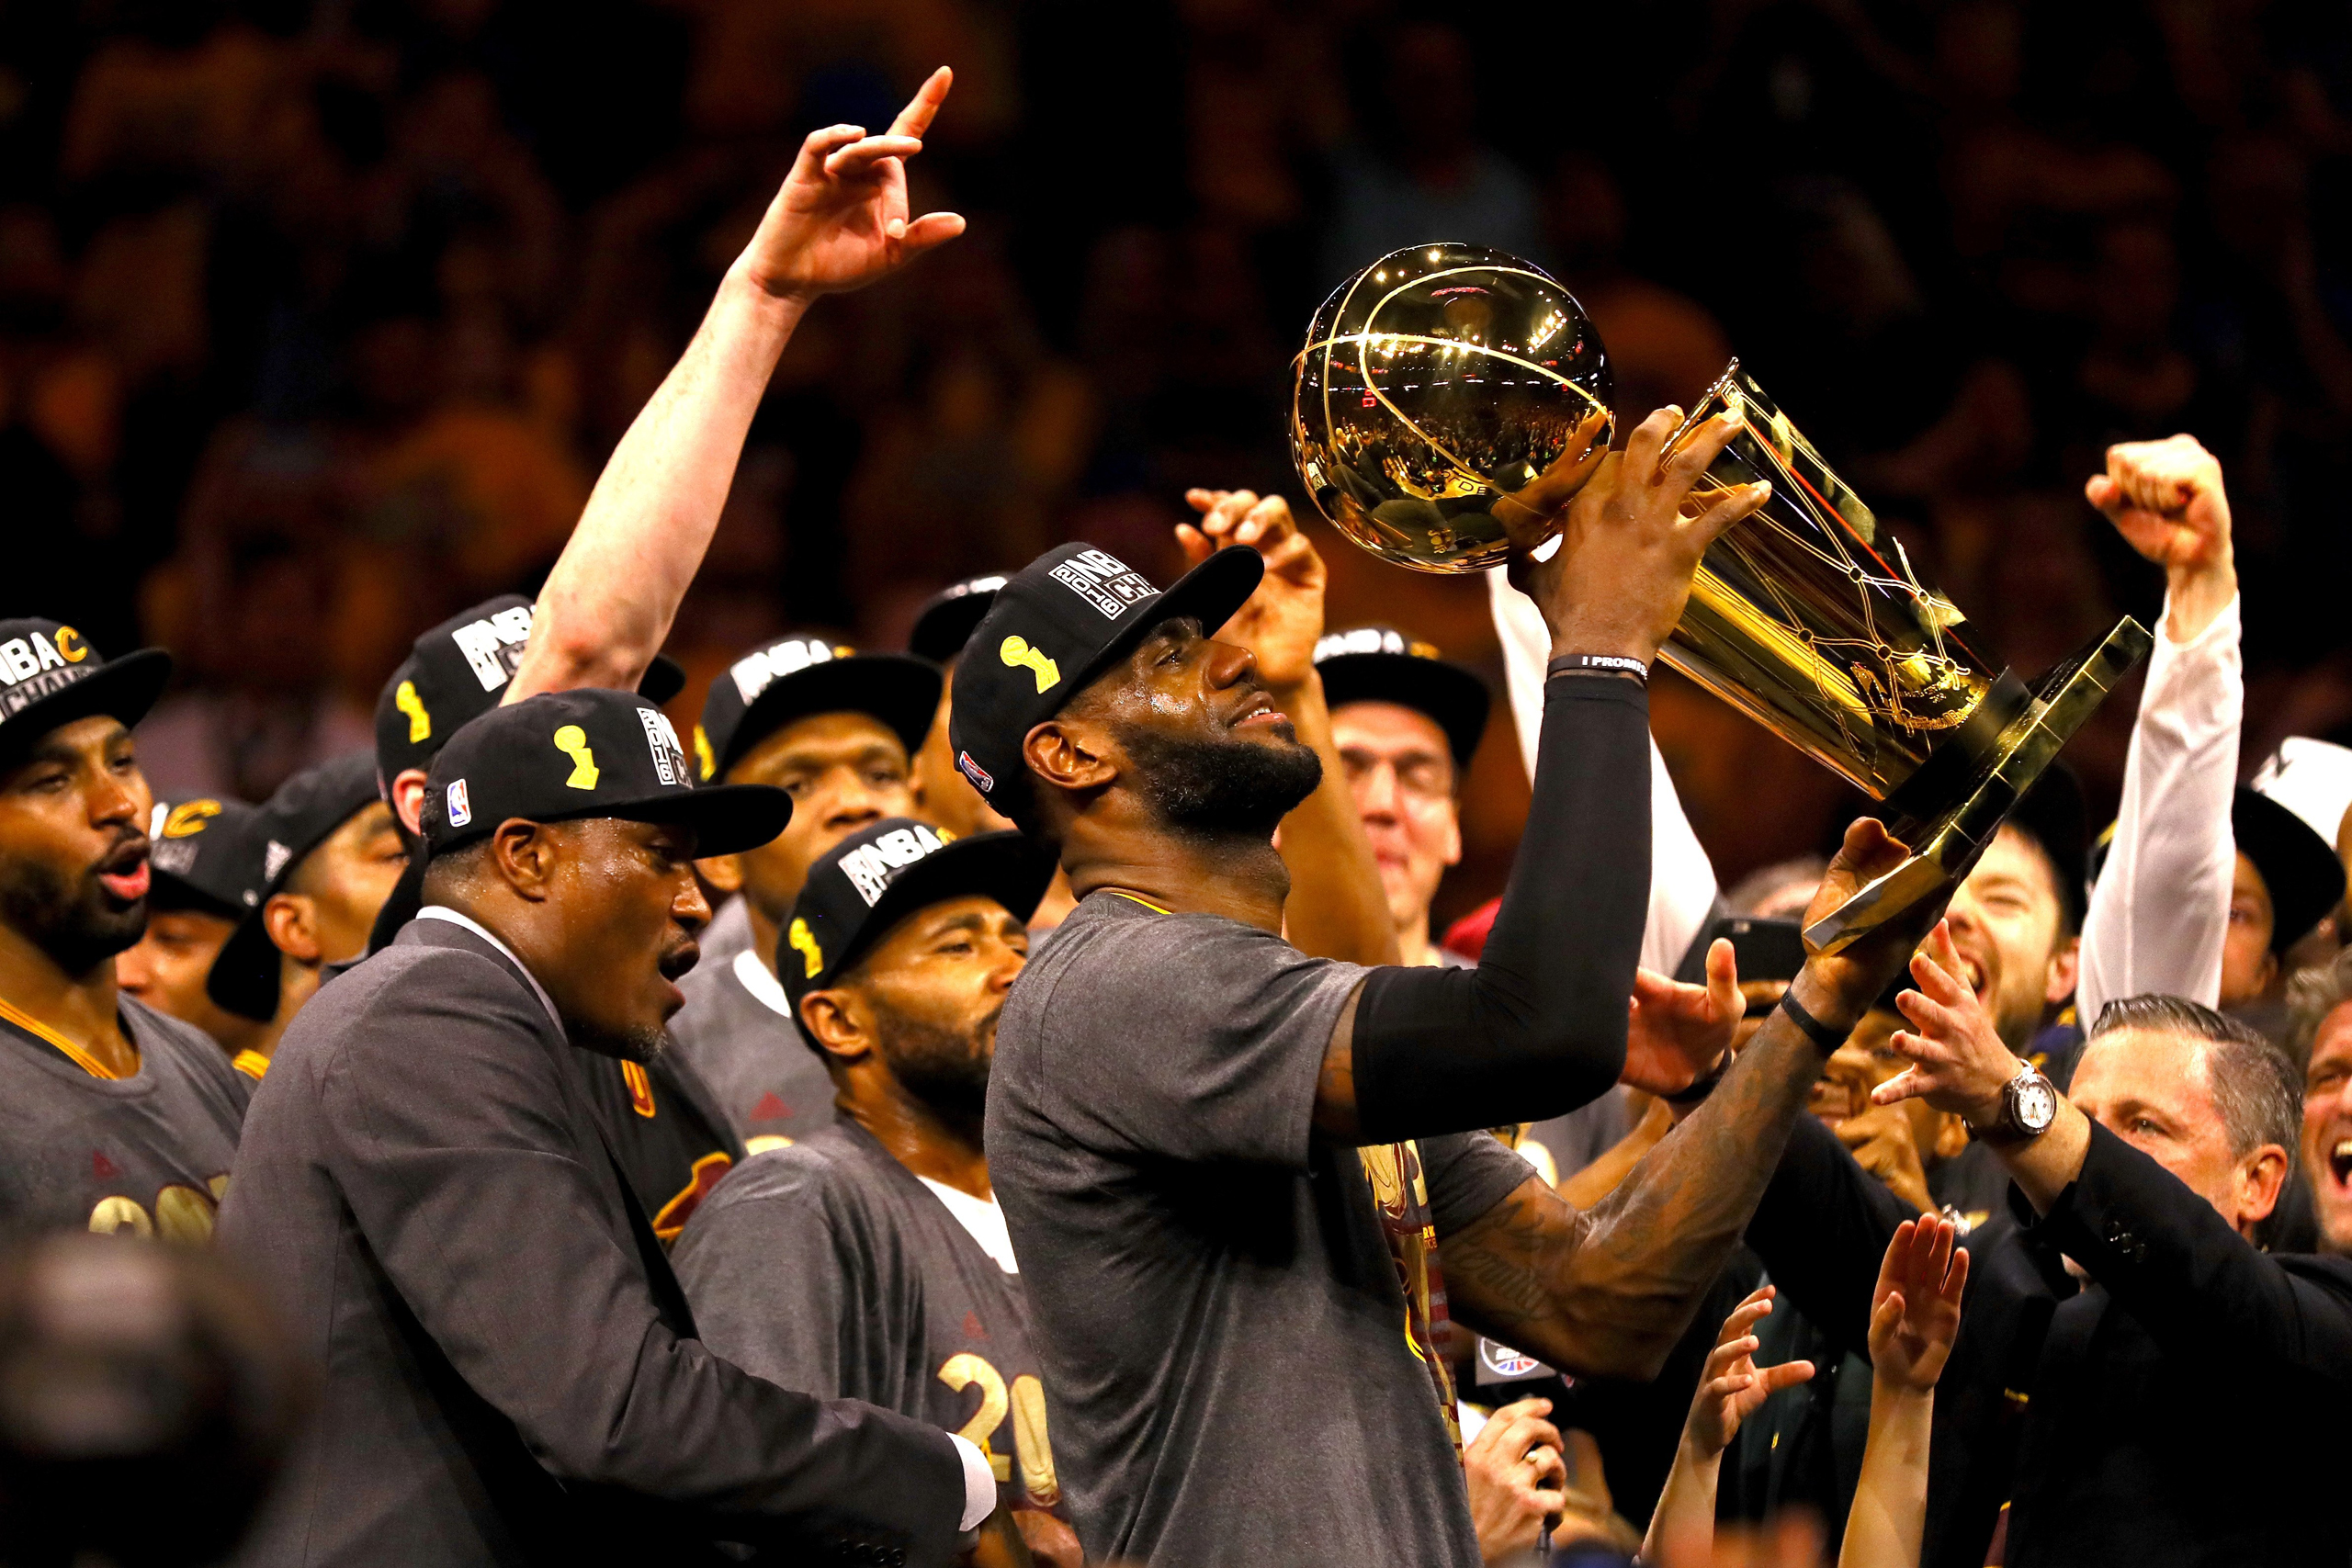 LeBron James #23 of the Cleveland Cavaliers holds the Larry O'Brien Championship Trophy after defeating the Golden State Warriors 93-89 in Game 7 of the 2016 NBA Finals at ORACLE Arena on June 19, 2016 in Oakland, California. NOTE TO USER: User expressly acknowledges and agrees that, by downloading and or using this photograph, User is consenting to the terms and conditions of the Getty Images License Agreement.  (Photo by Ezra Shaw/Getty Images)